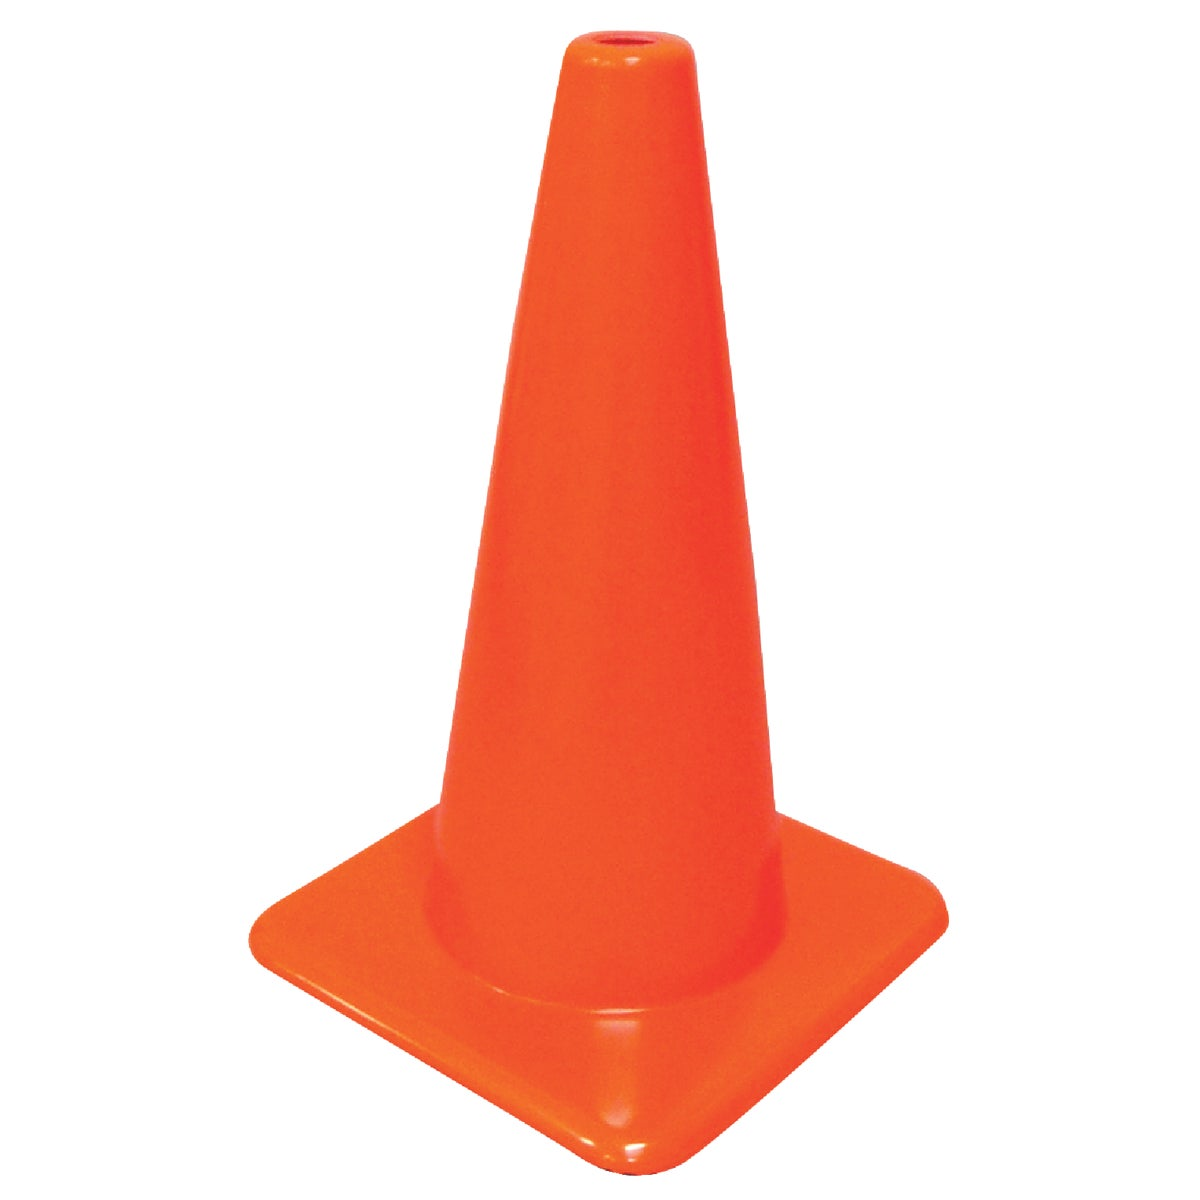 18X11.25 SAFETY CONE - SC-18 by Hy Ko Prods Co